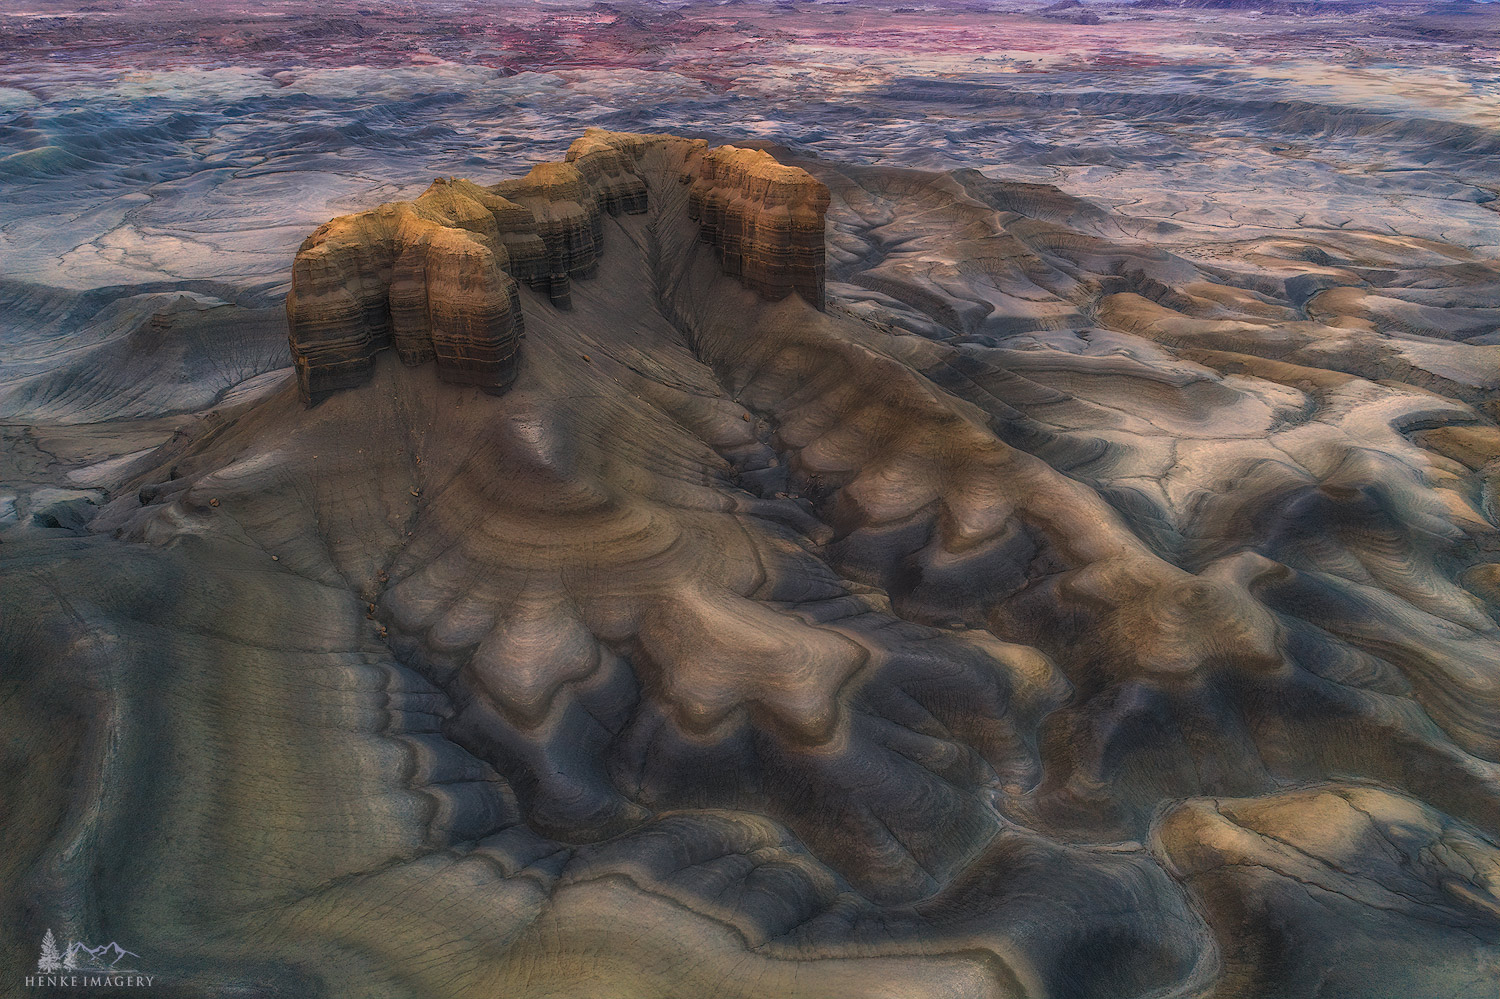 badlands, Utah, fortress, rock, castle, aerial, patterns, unique, drone, soil, perspective, photo